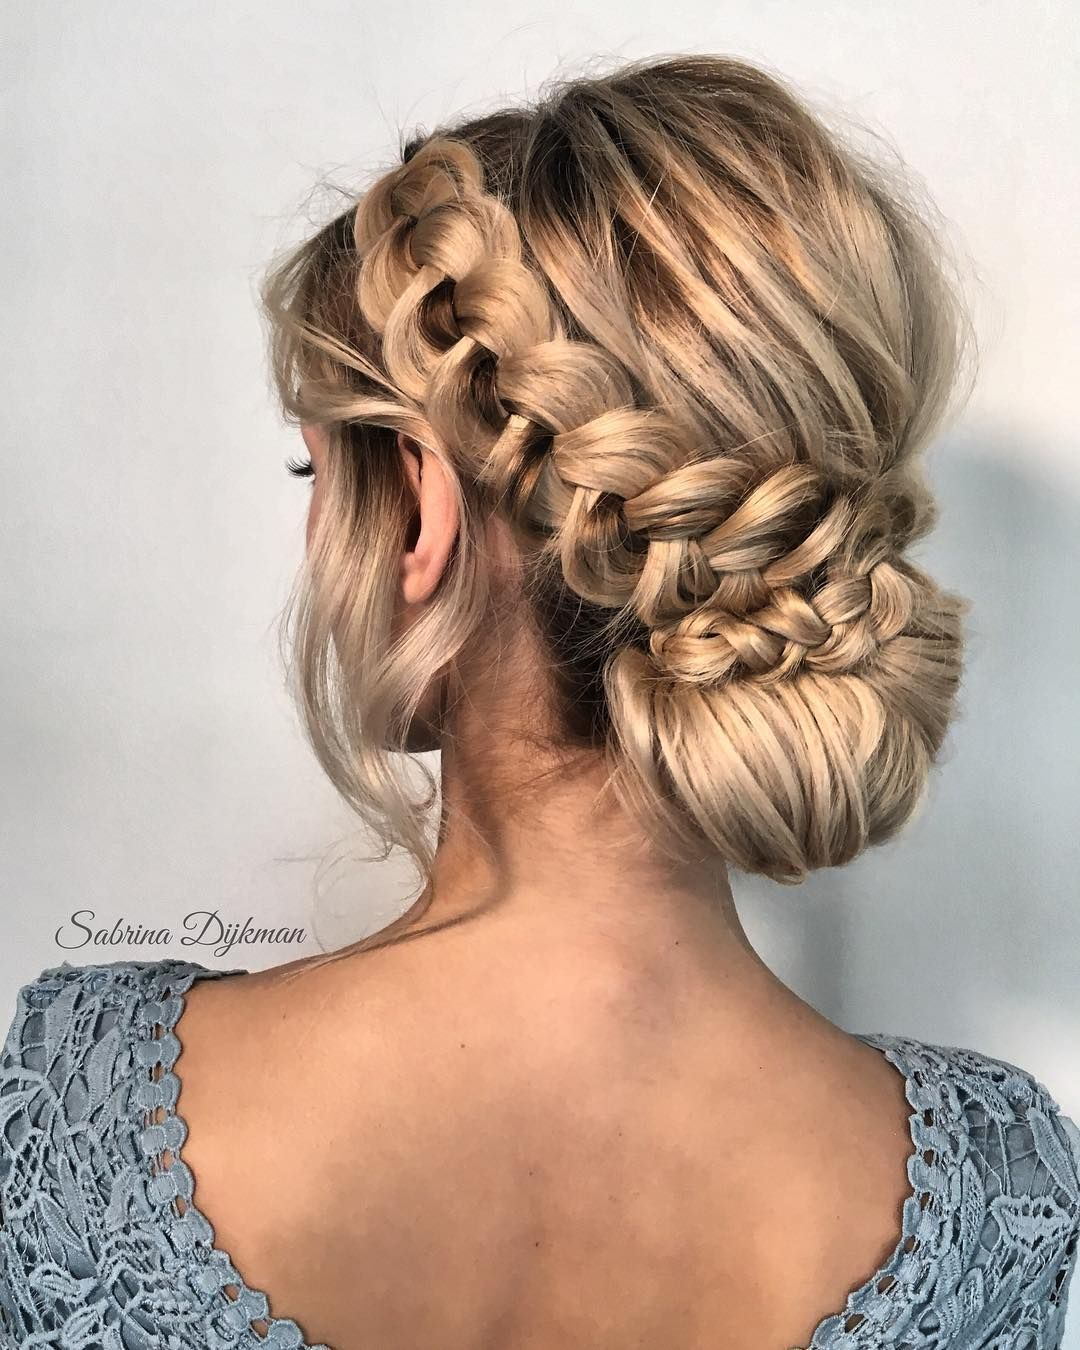 92 Drop Dead Gorgeous Wedding Hairstyles For Every Bride To Be